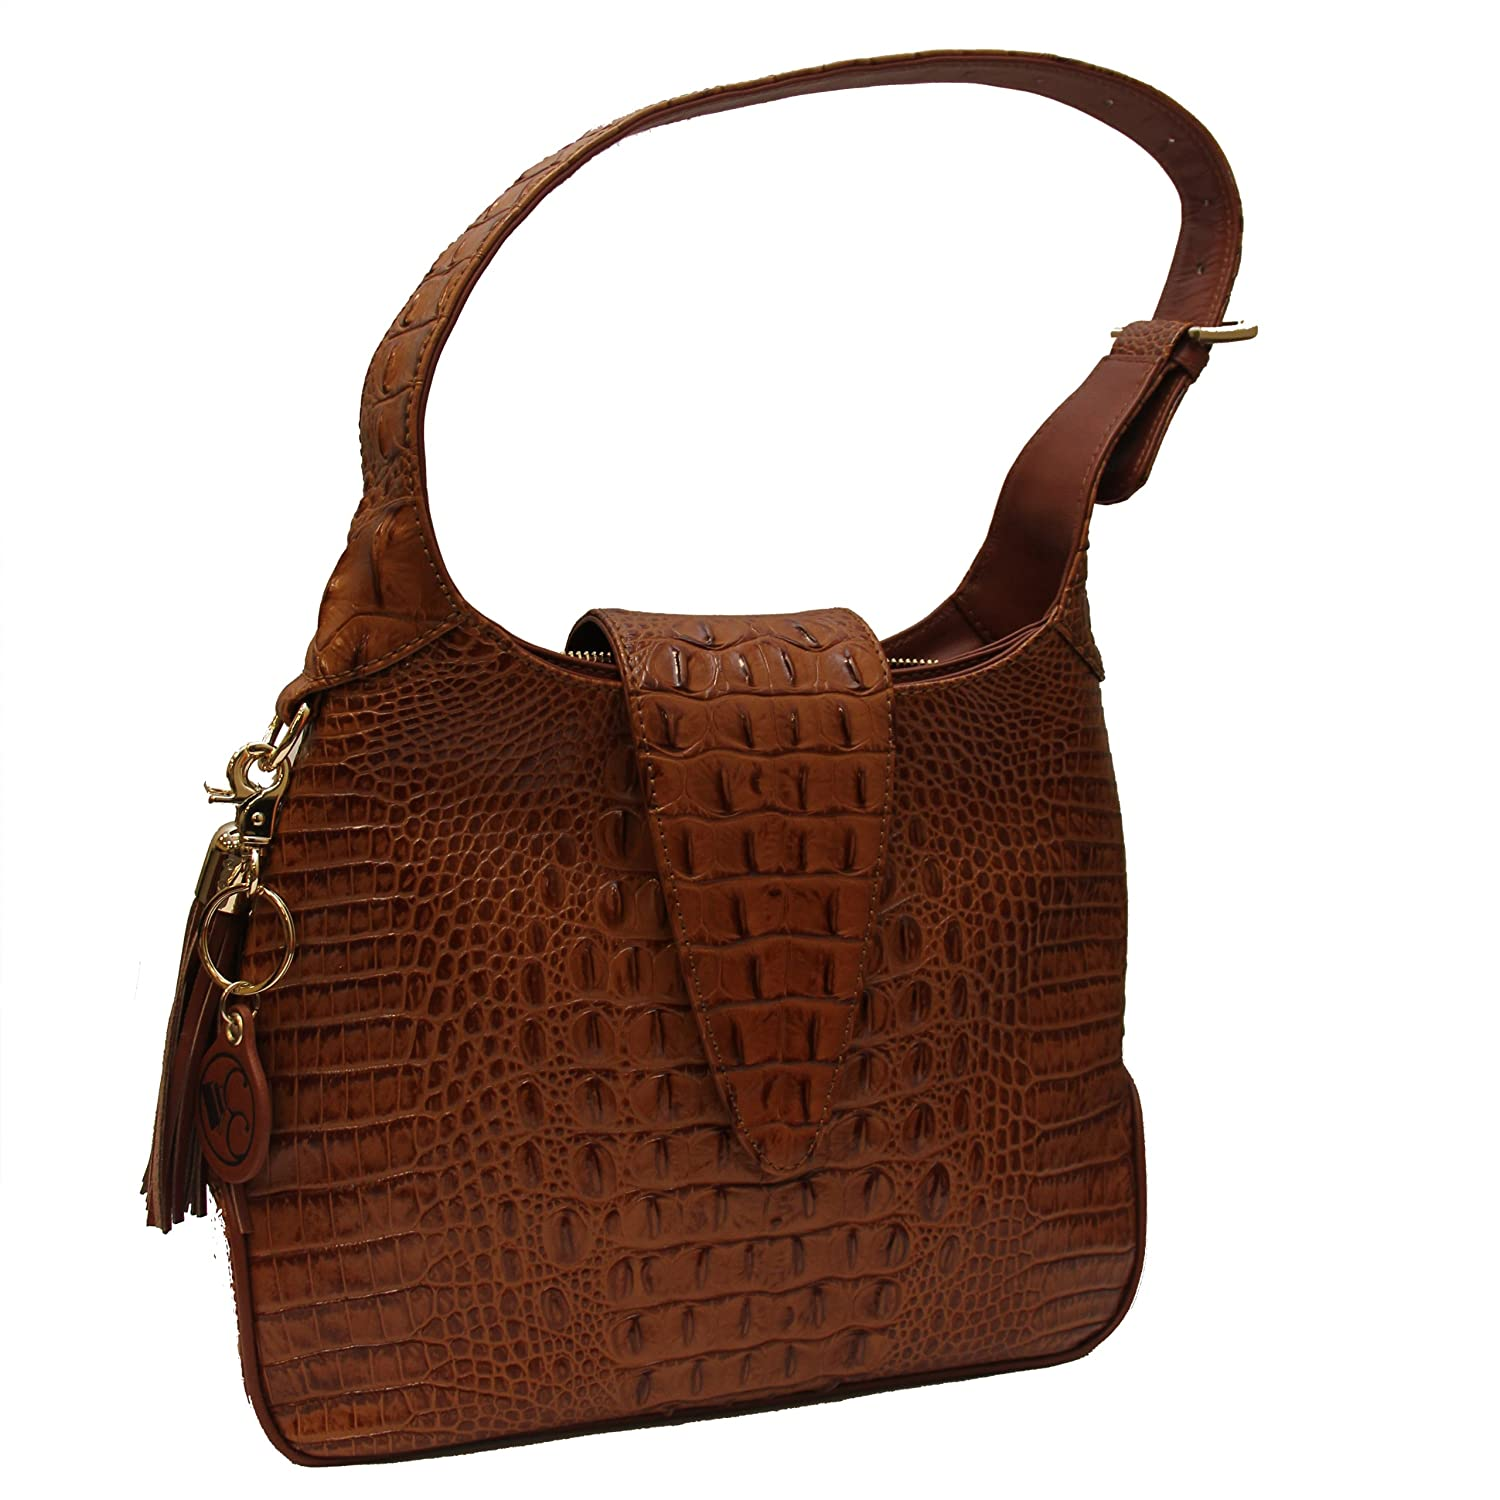 Amazon.com: Concealed Carrie Concealed Carry Hobo Handbag: Shoes